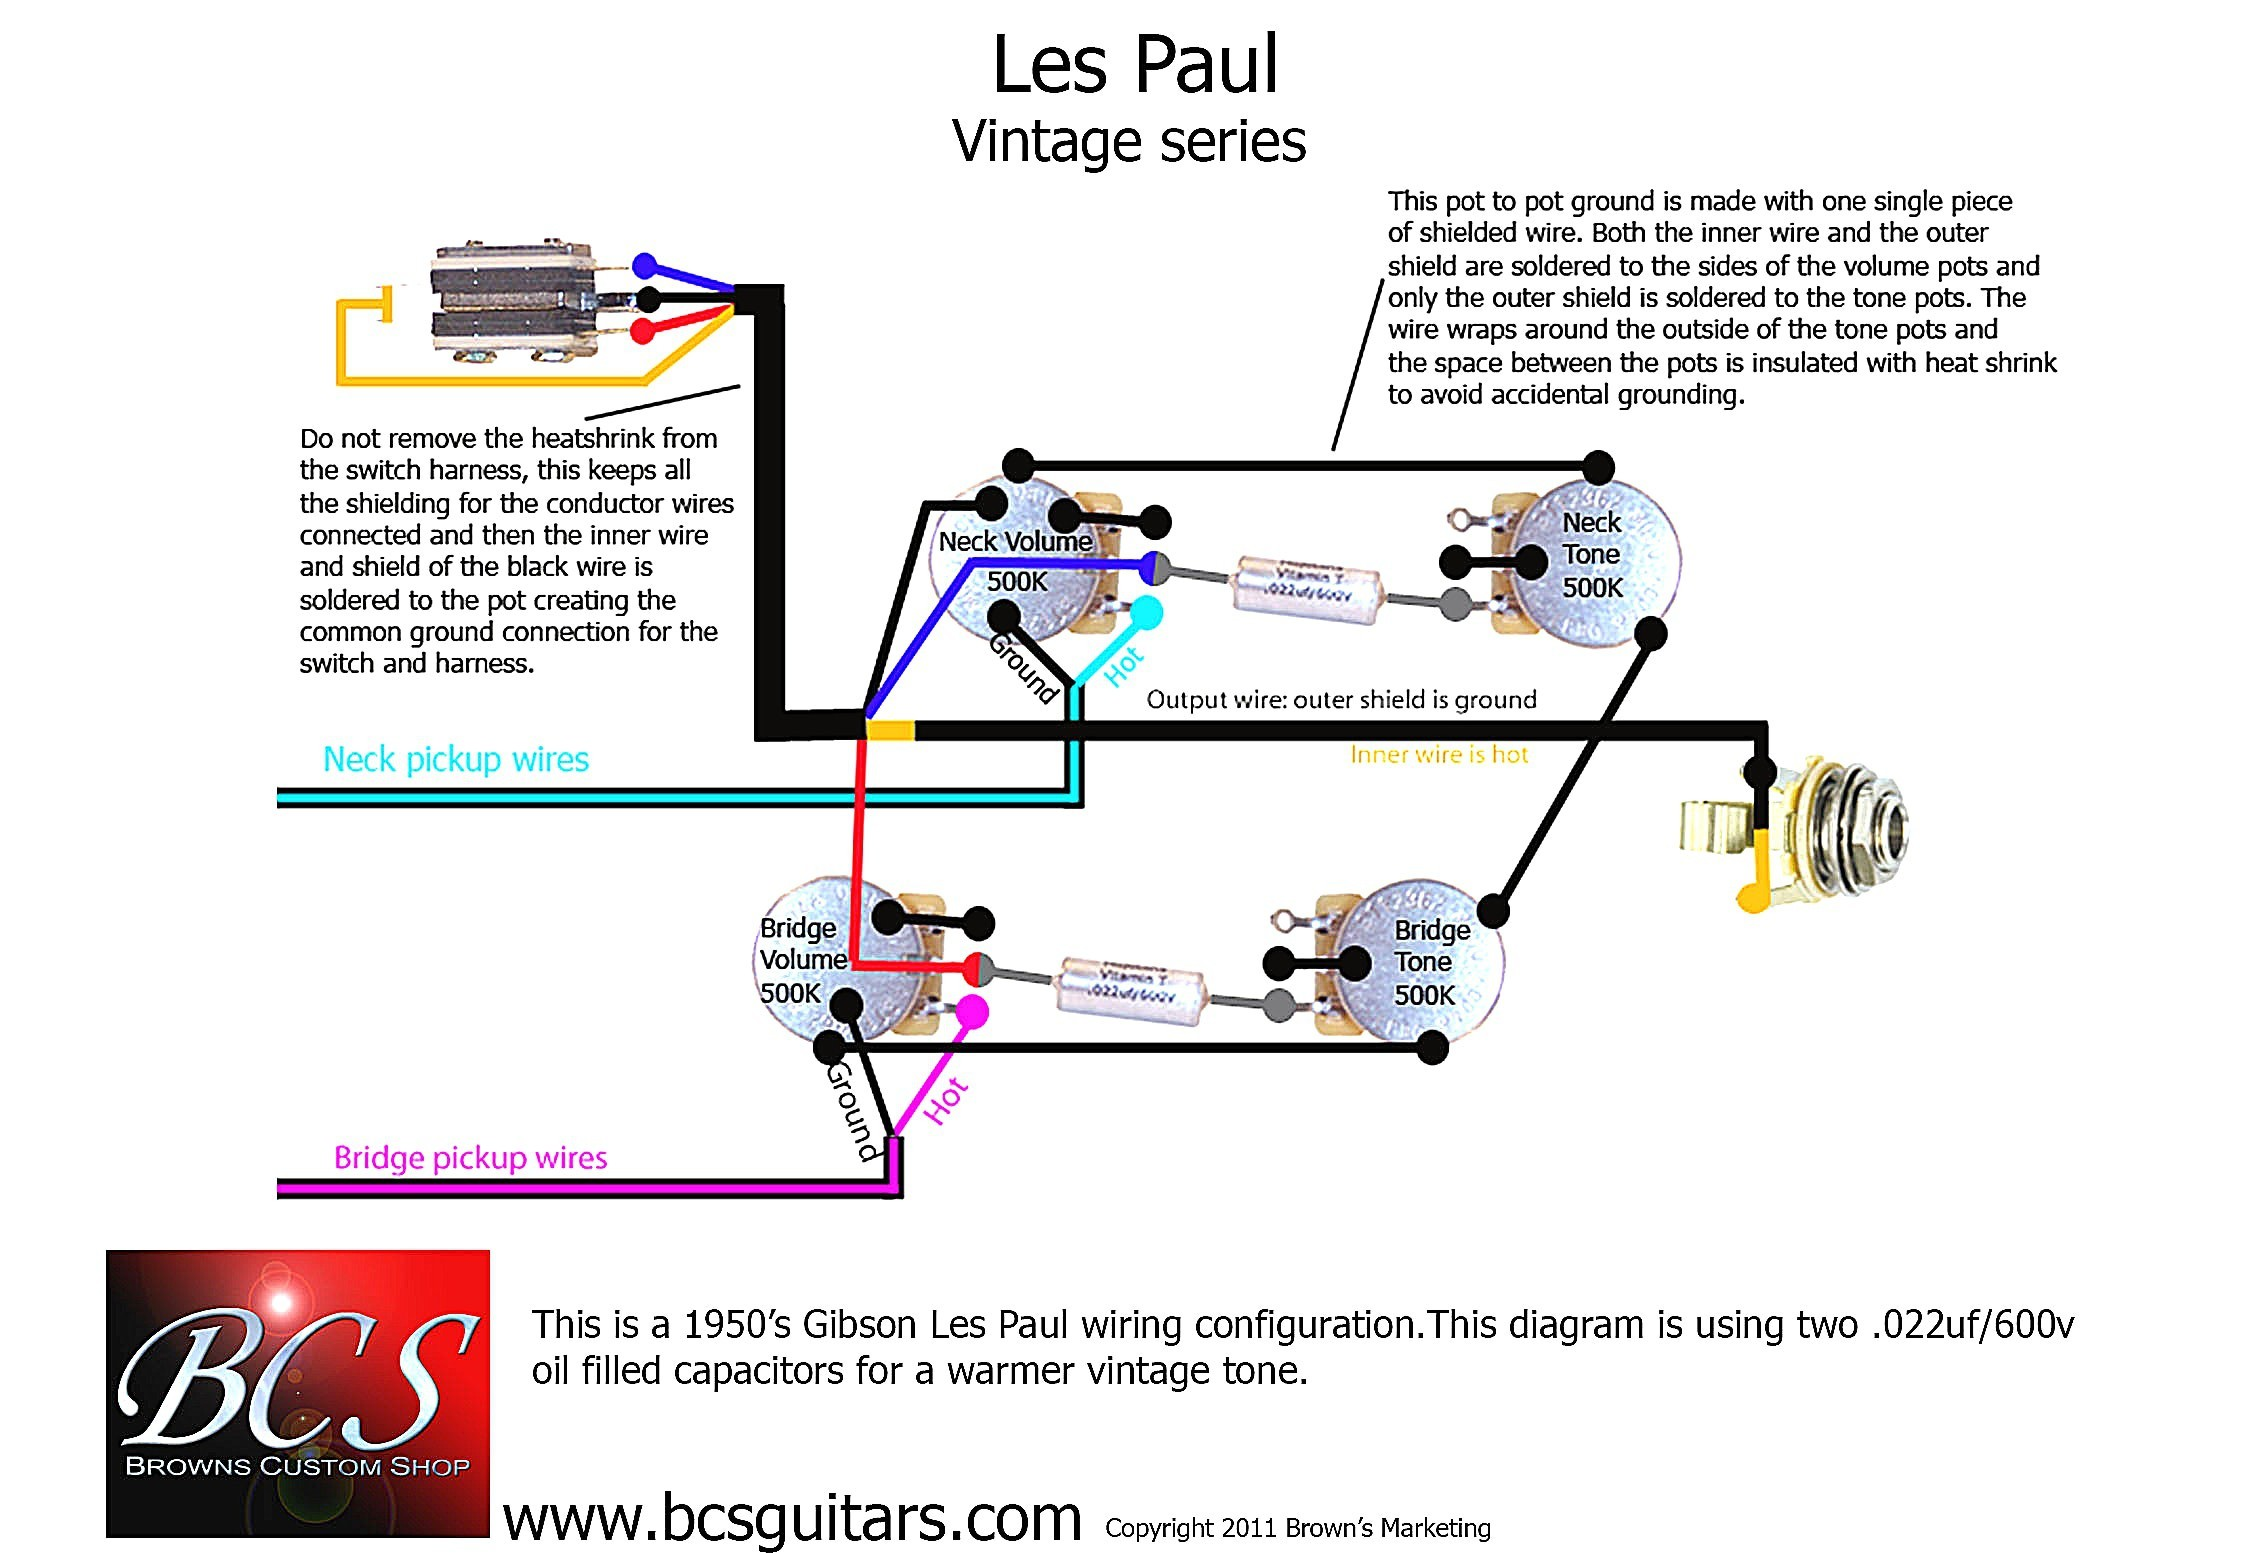 Jimmy page wiring diagram wiring diagram image luxury gibson les paul wiring diagram diagram diagram gibson les paul triumph bass flyguitars seymour duncan p rails from jimmy page asfbconference2016 Choice Image